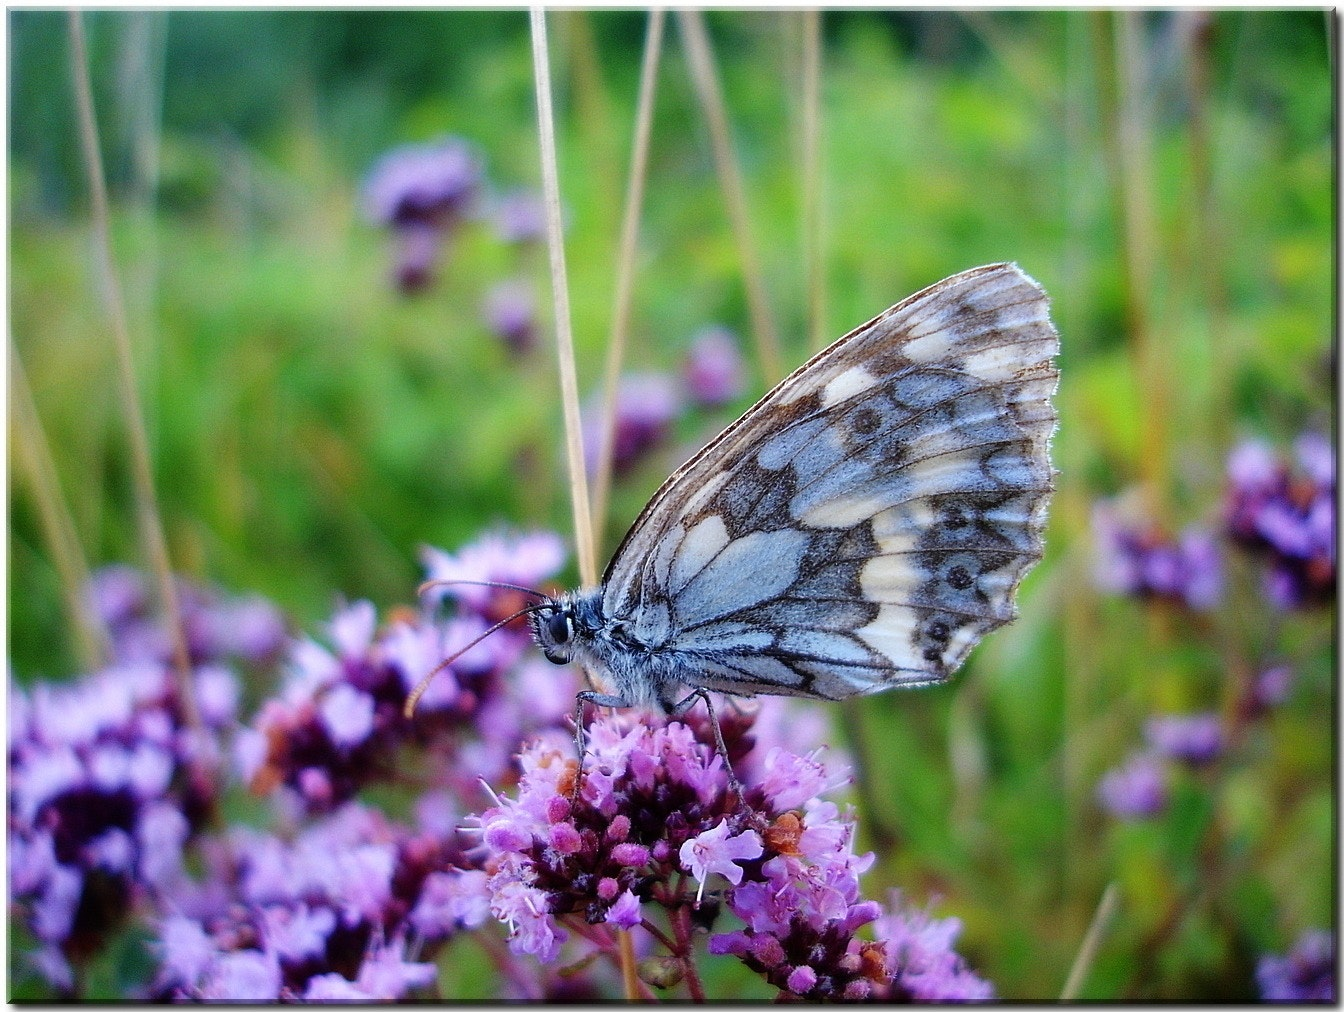 Grey and Blue Butterfly on Purple Flower during Daytime, Butterfly, Close-up, Flora, Flowers, HQ Photo